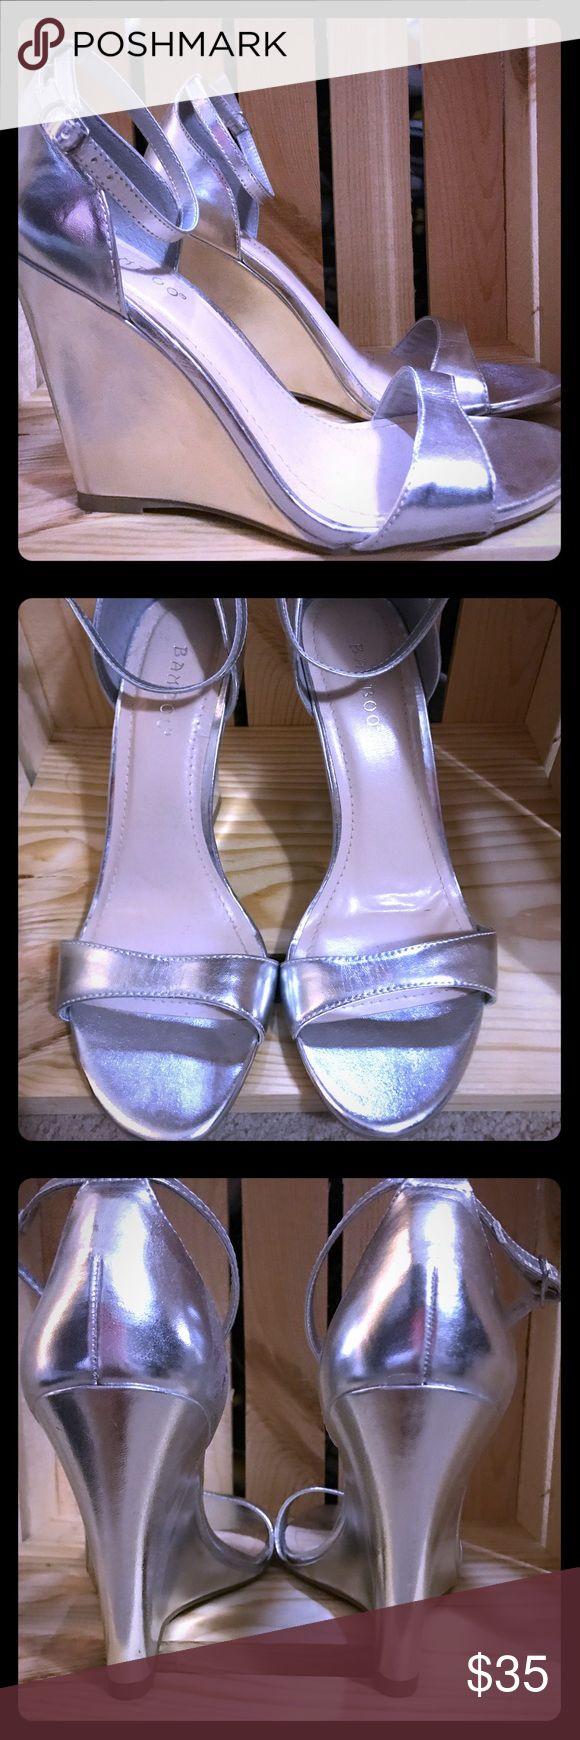 Bamboo brand silver wedge sandals Perfect wedges for summer wedding or prom! Wedge is about 4 inches. Never worn, only tried on. My feet can't handle the tall wedge anymore!  They look a little iridescent in the pictures, but they're silver. Bamboo Shoes Wedges